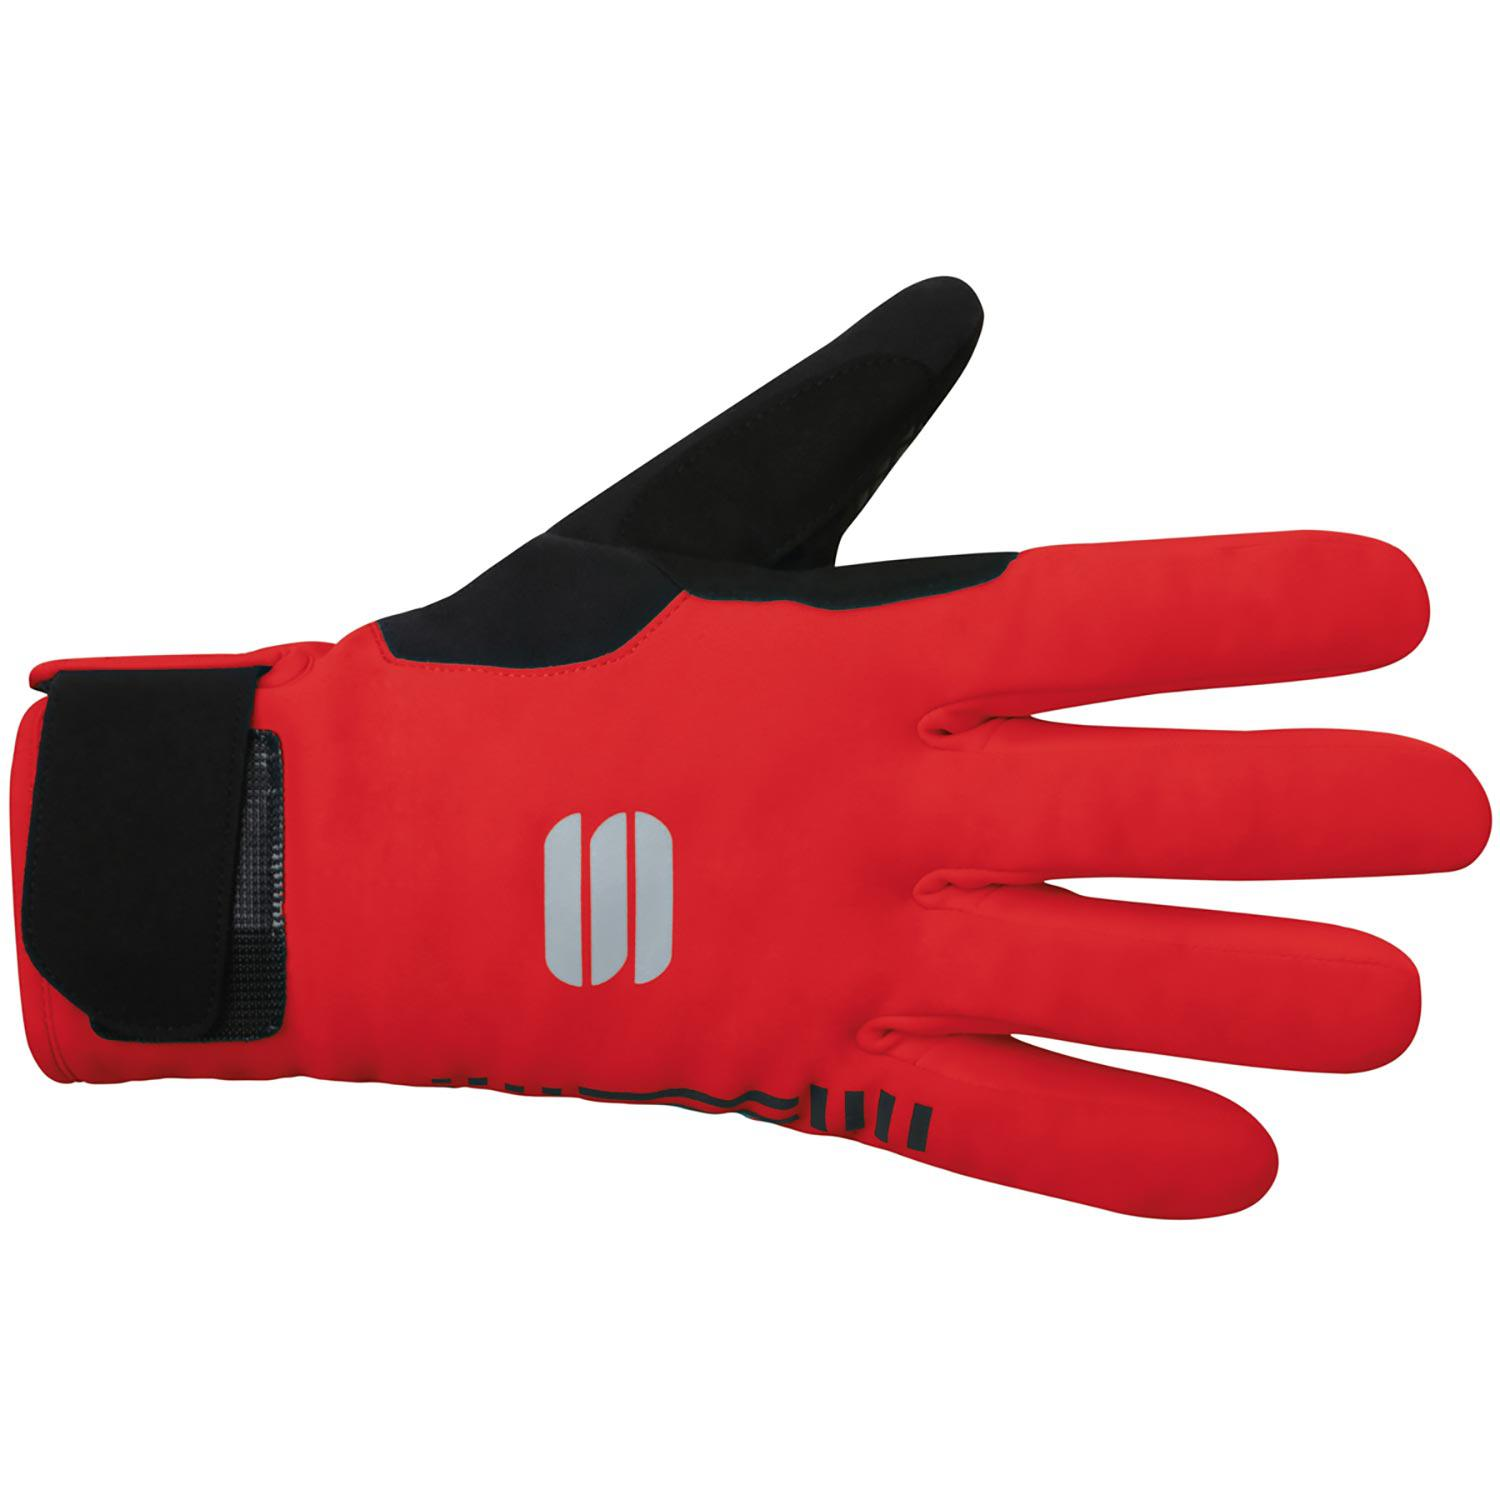 Sportful-Sportful Sottozero Gloves-Red-XS-SF205395671-saddleback-elite-performance-cycling